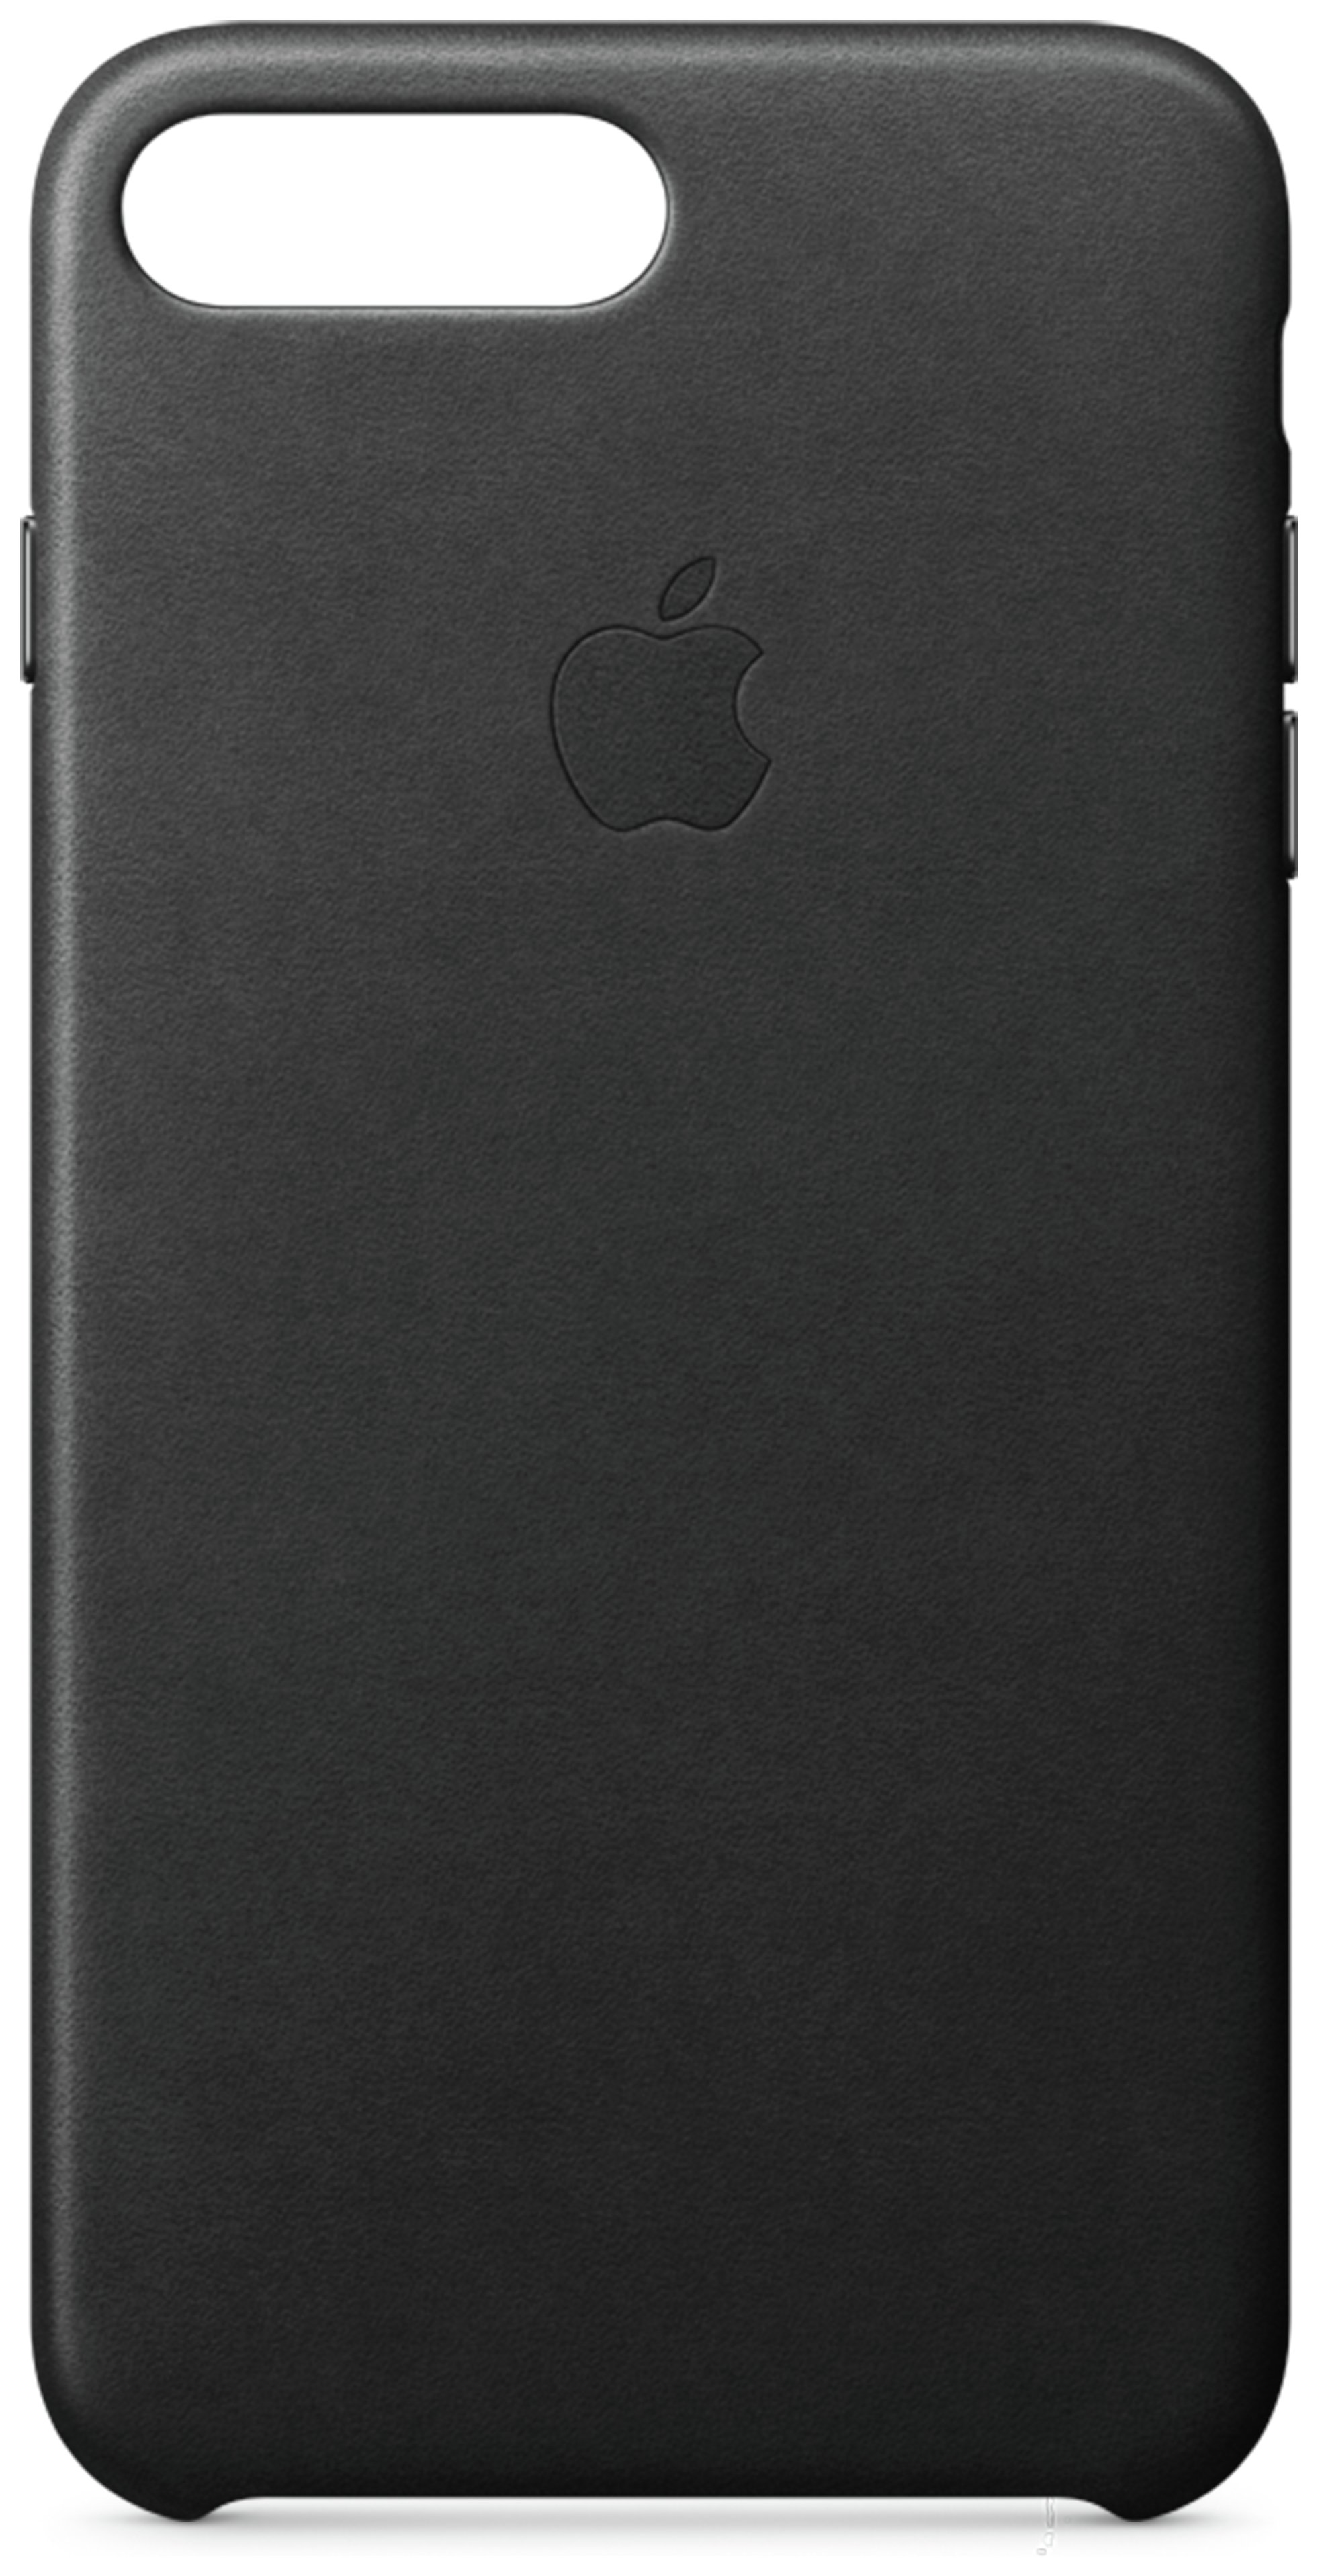 Apple iPhone 7 Plus Leather Case - Black cheapest retail price